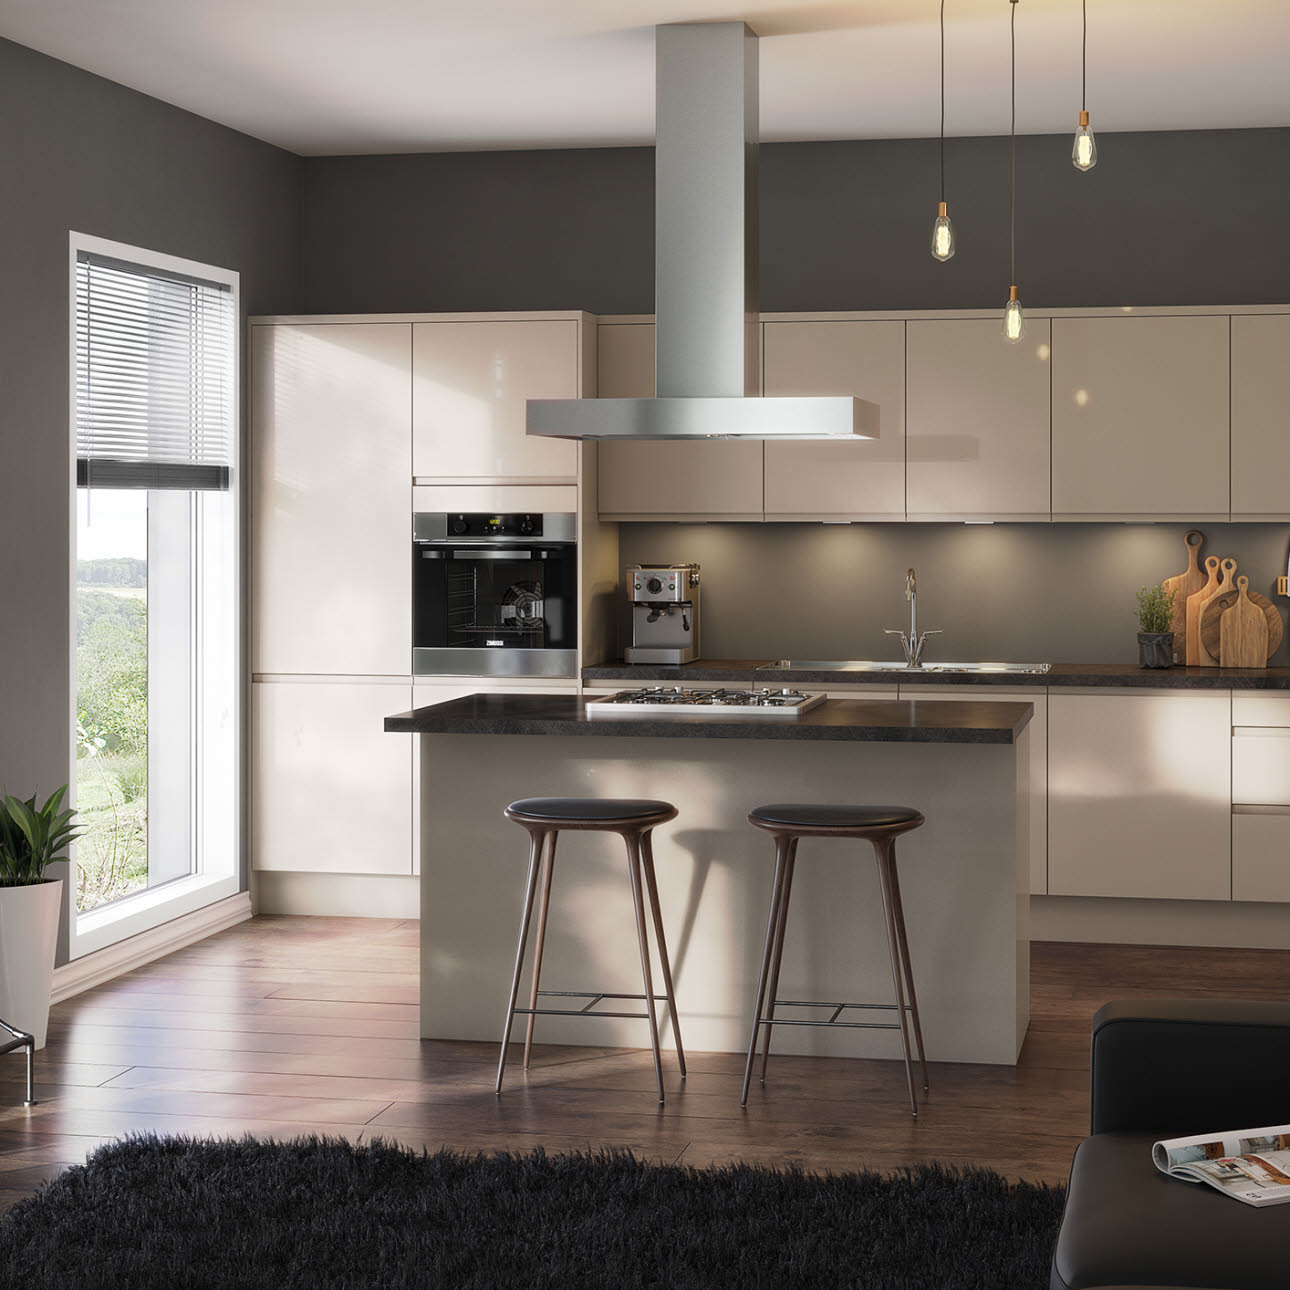 Luna cashmere kitchen style kitchens magnet trade for Coloured kitchen units uk